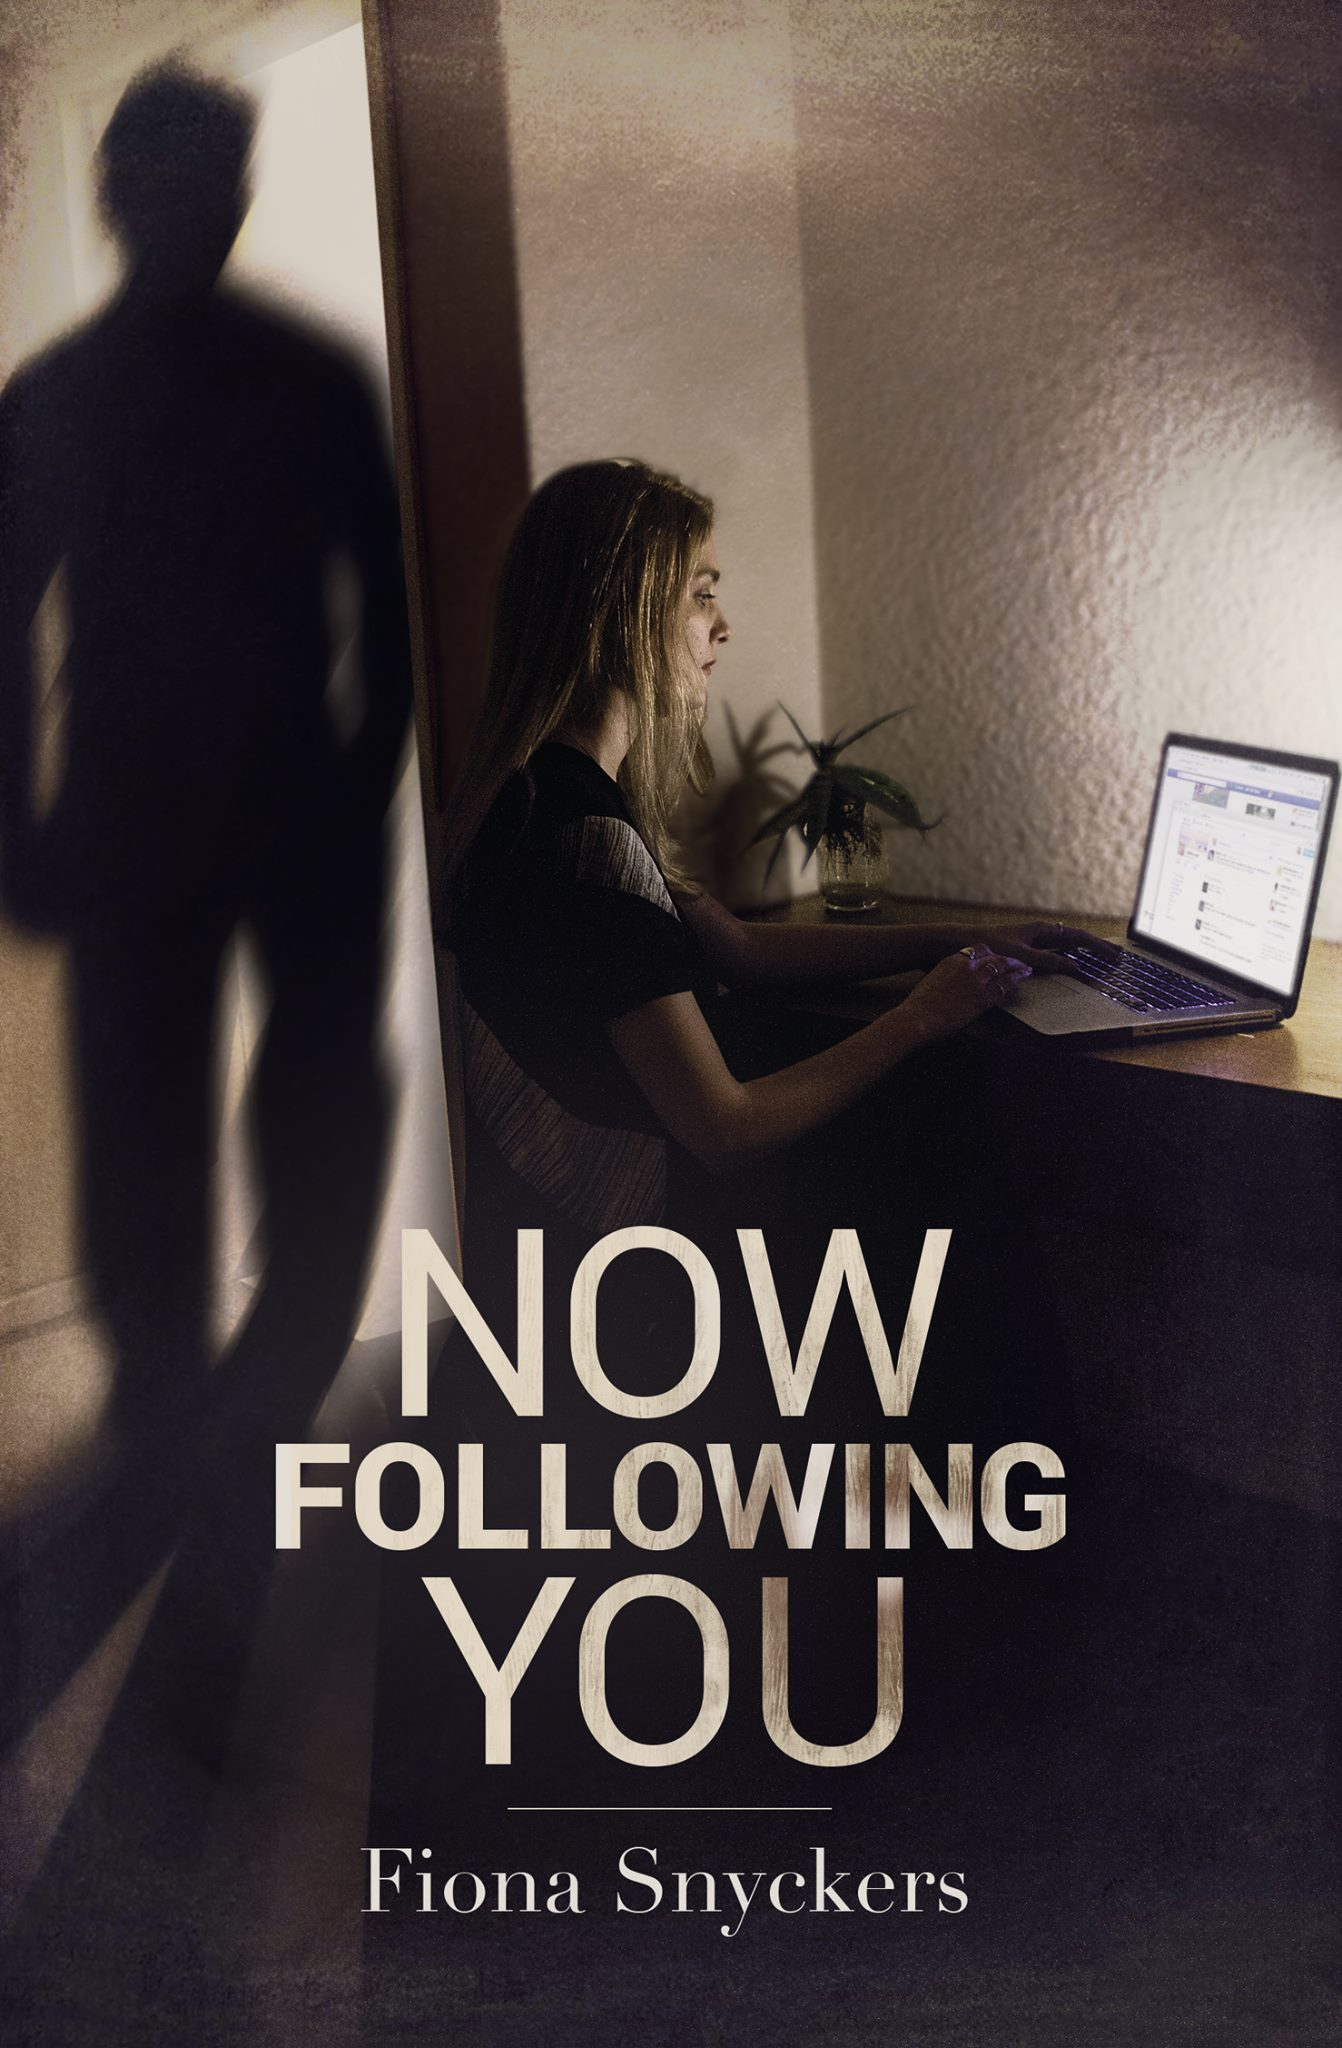 Now Following You by Fiona Snyckers